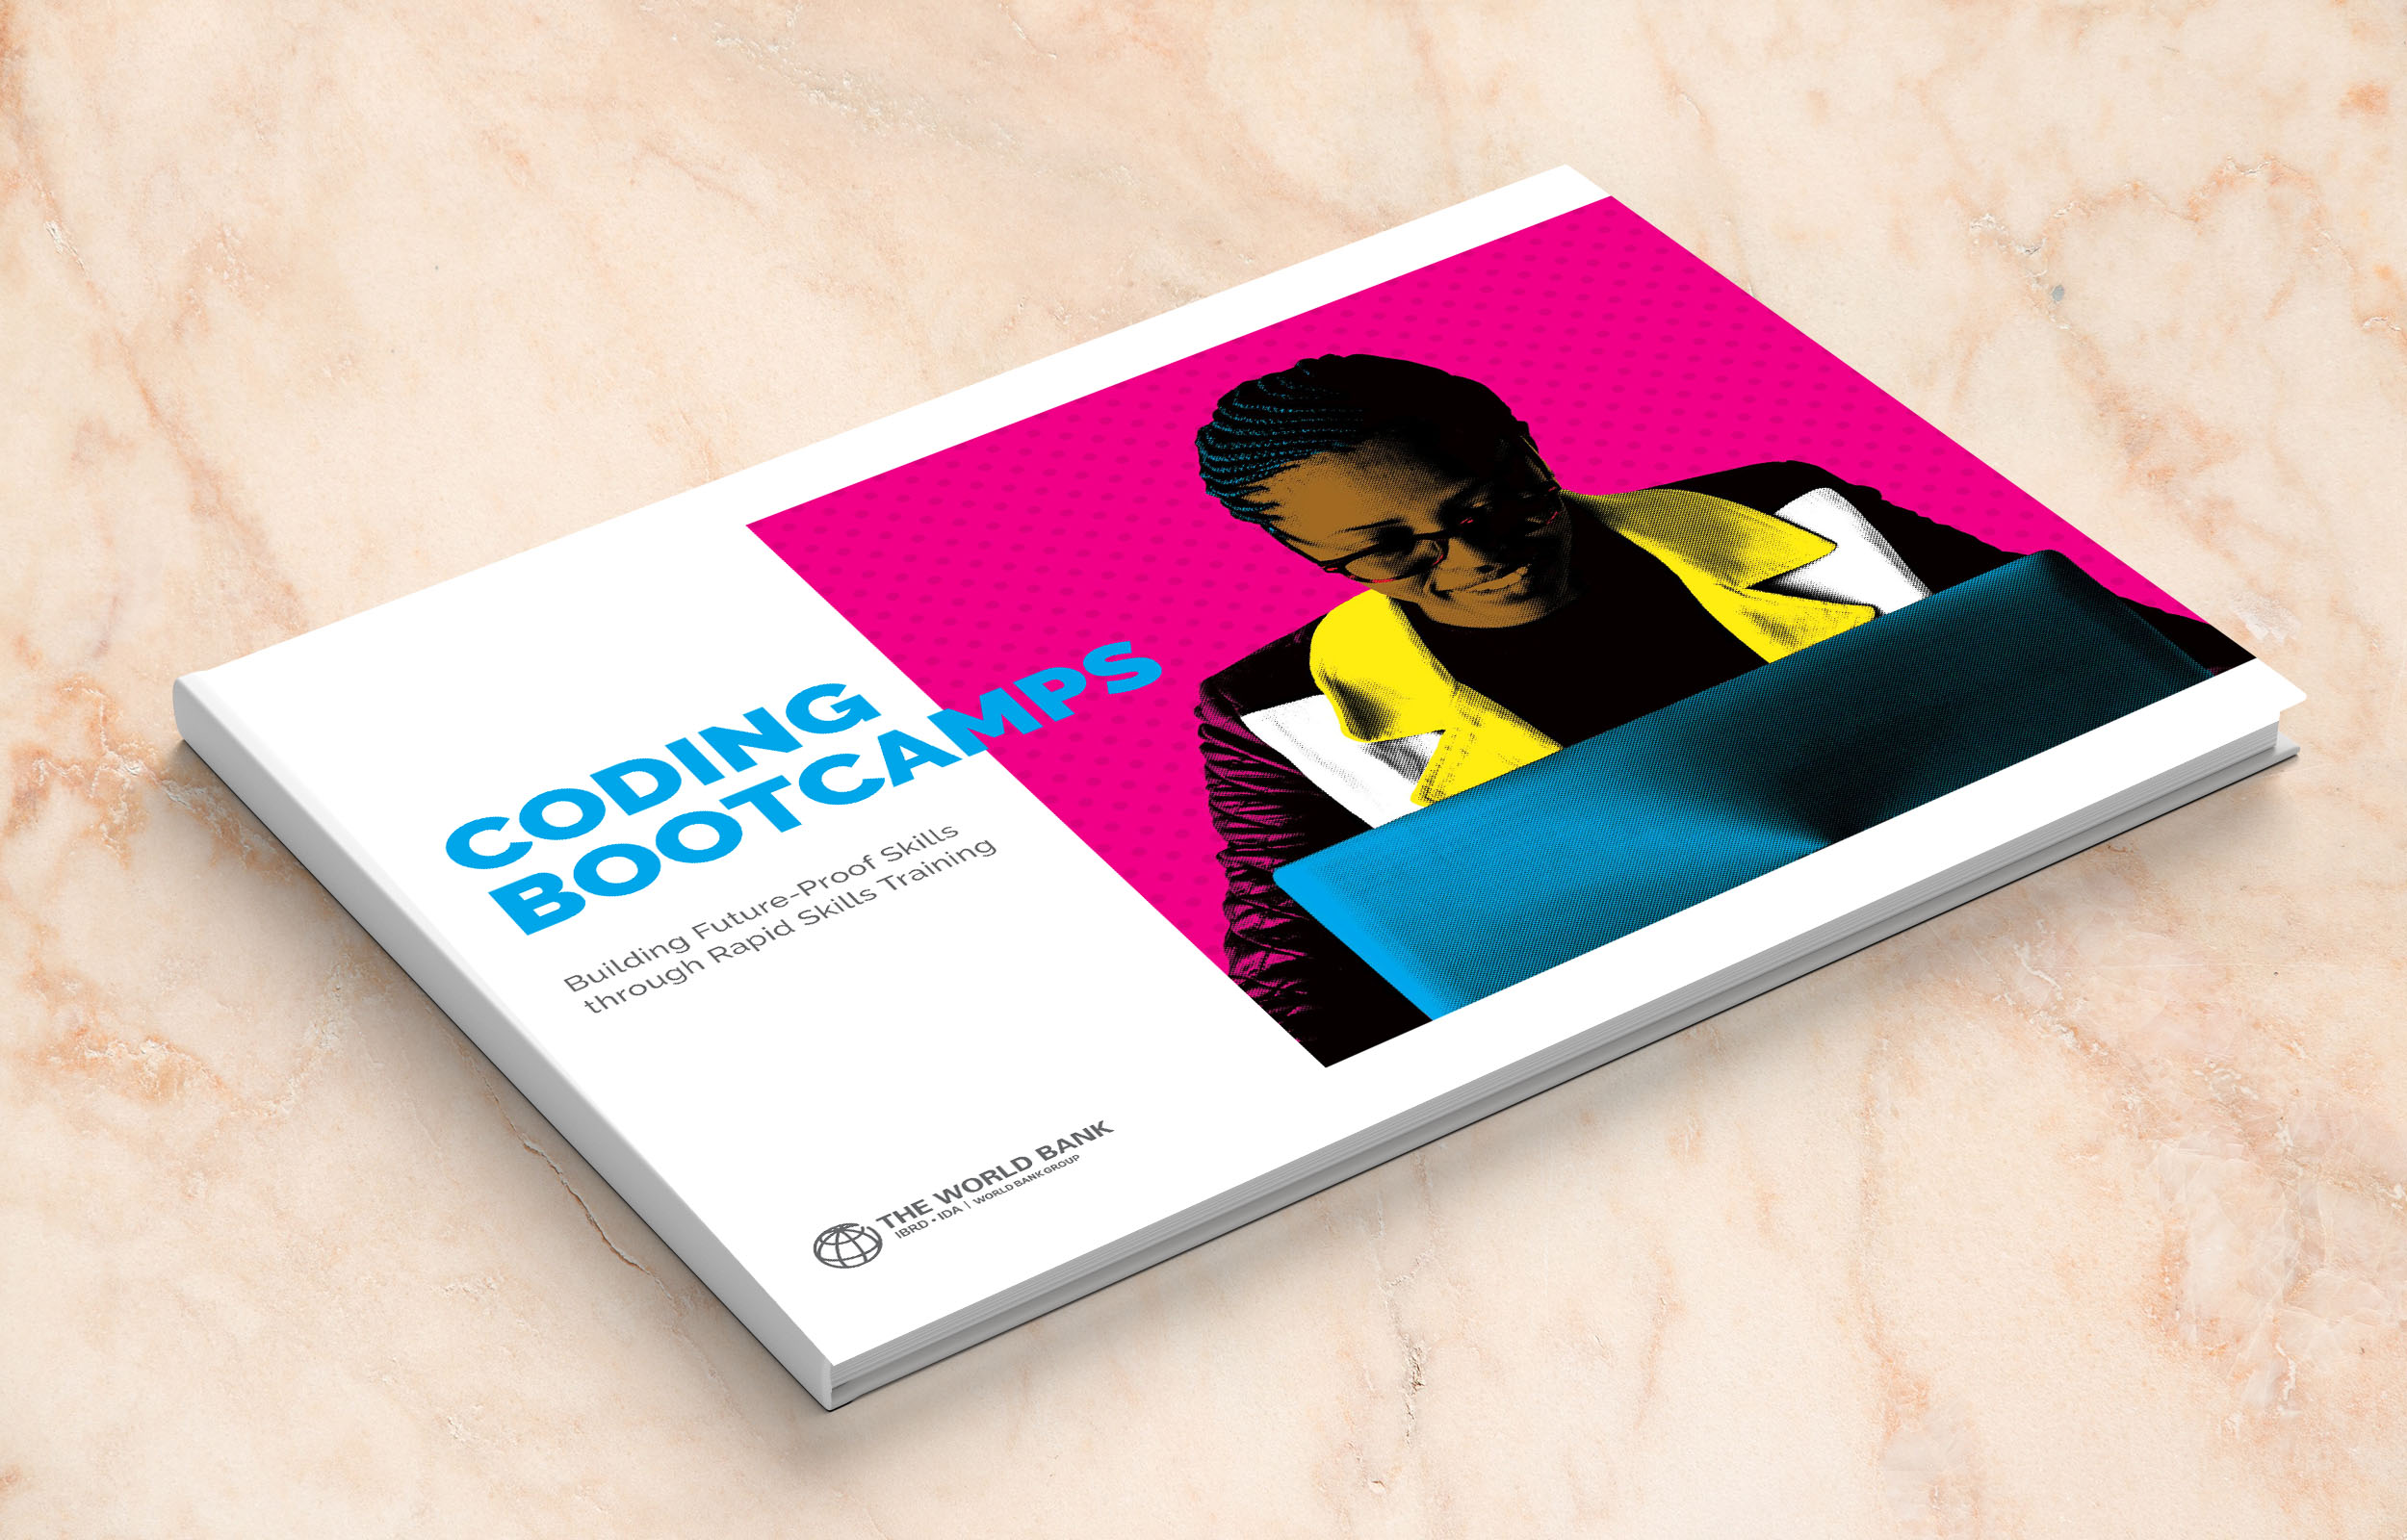 Coding_Bootcamps_World_Bank_cover.jpg